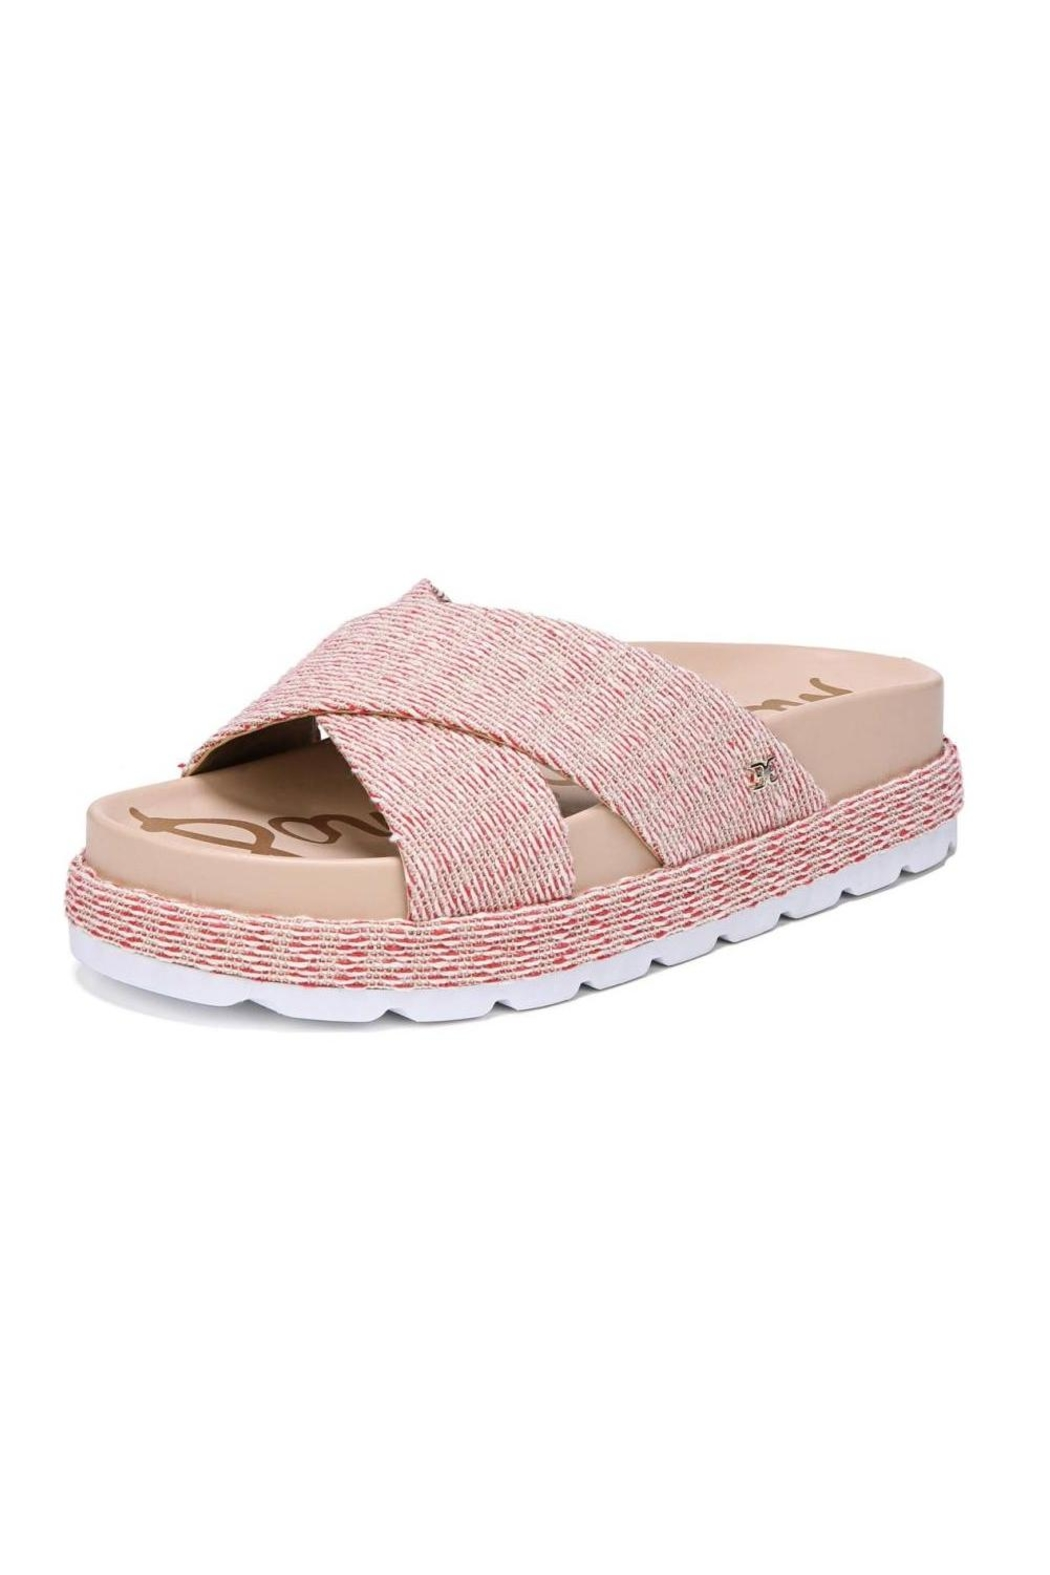 outlet latest collections Sadia Slide Sandal free shipping choice buy cheap 100% guaranteed clearance cheap real clearance store for sale LSSrSVEfk